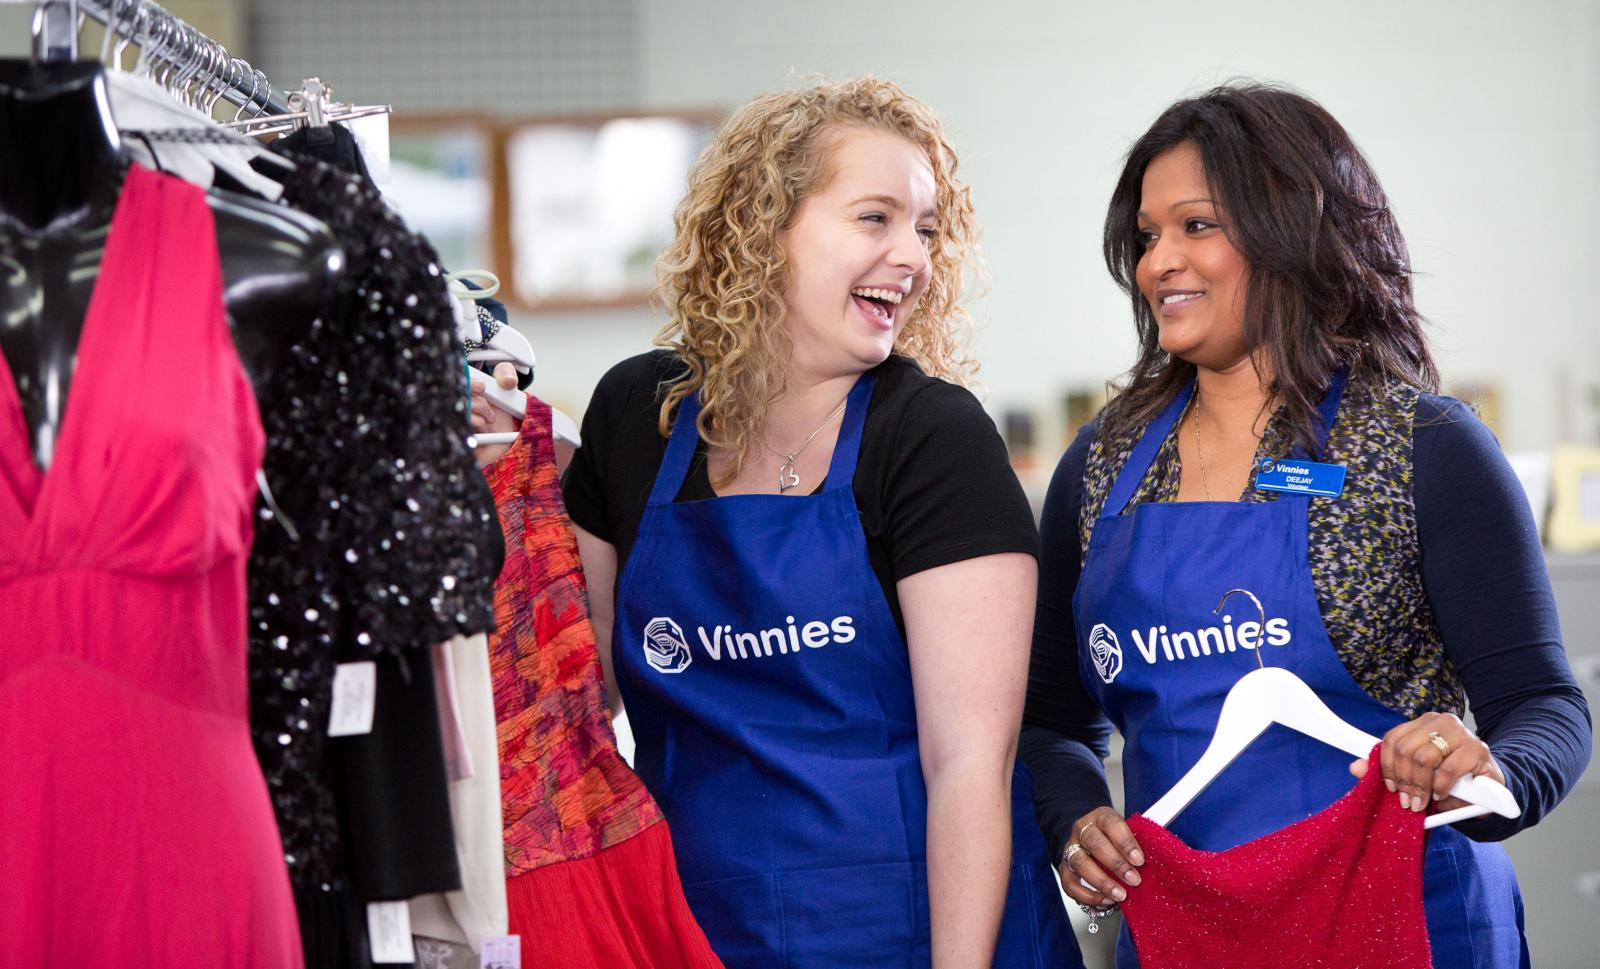 Volunteer in our Vinnies Shops